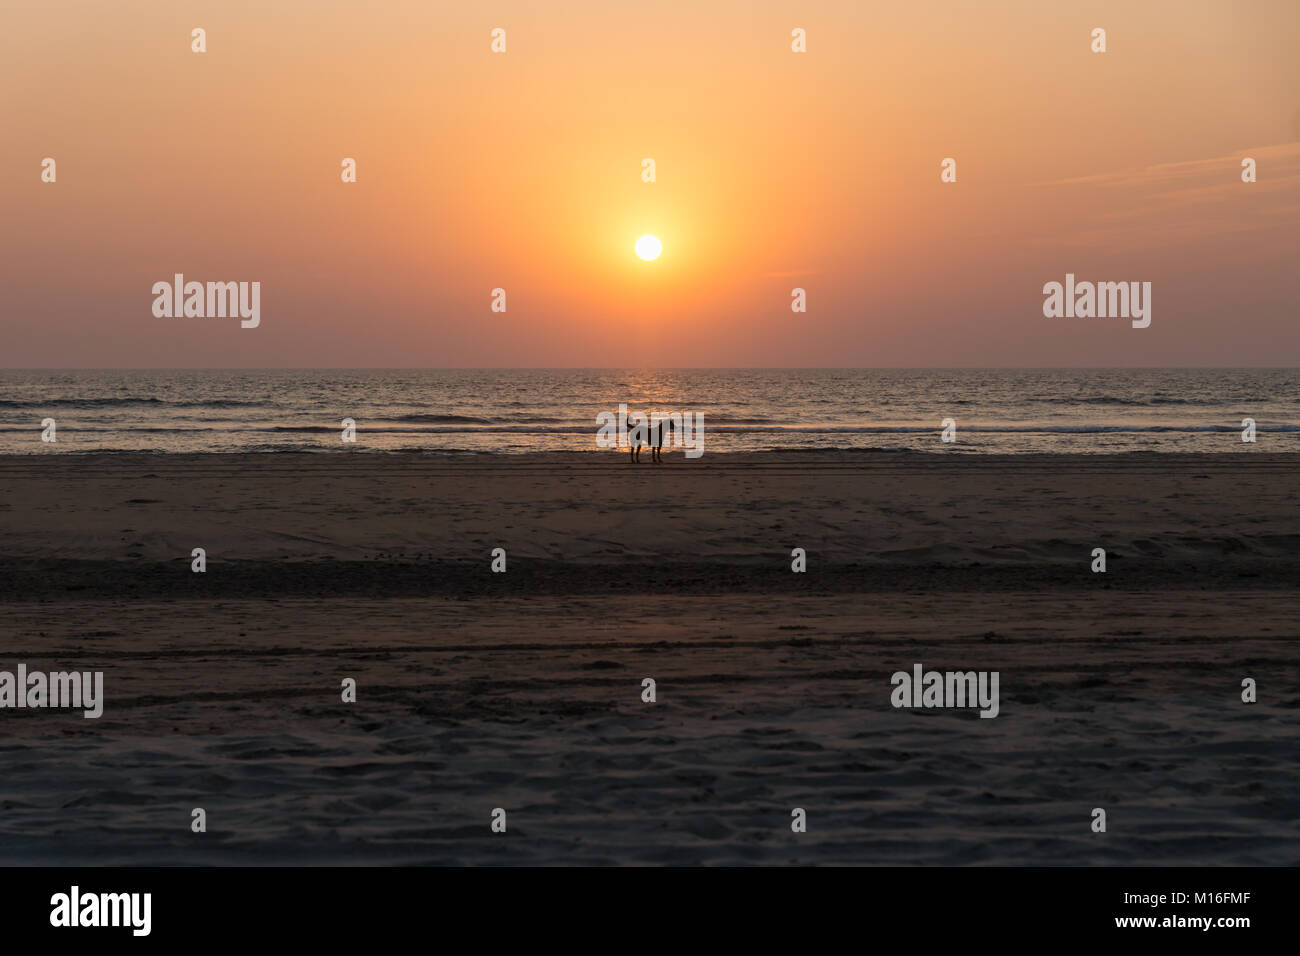 Dog at the beach of Goa during sunset, India - Stock Image